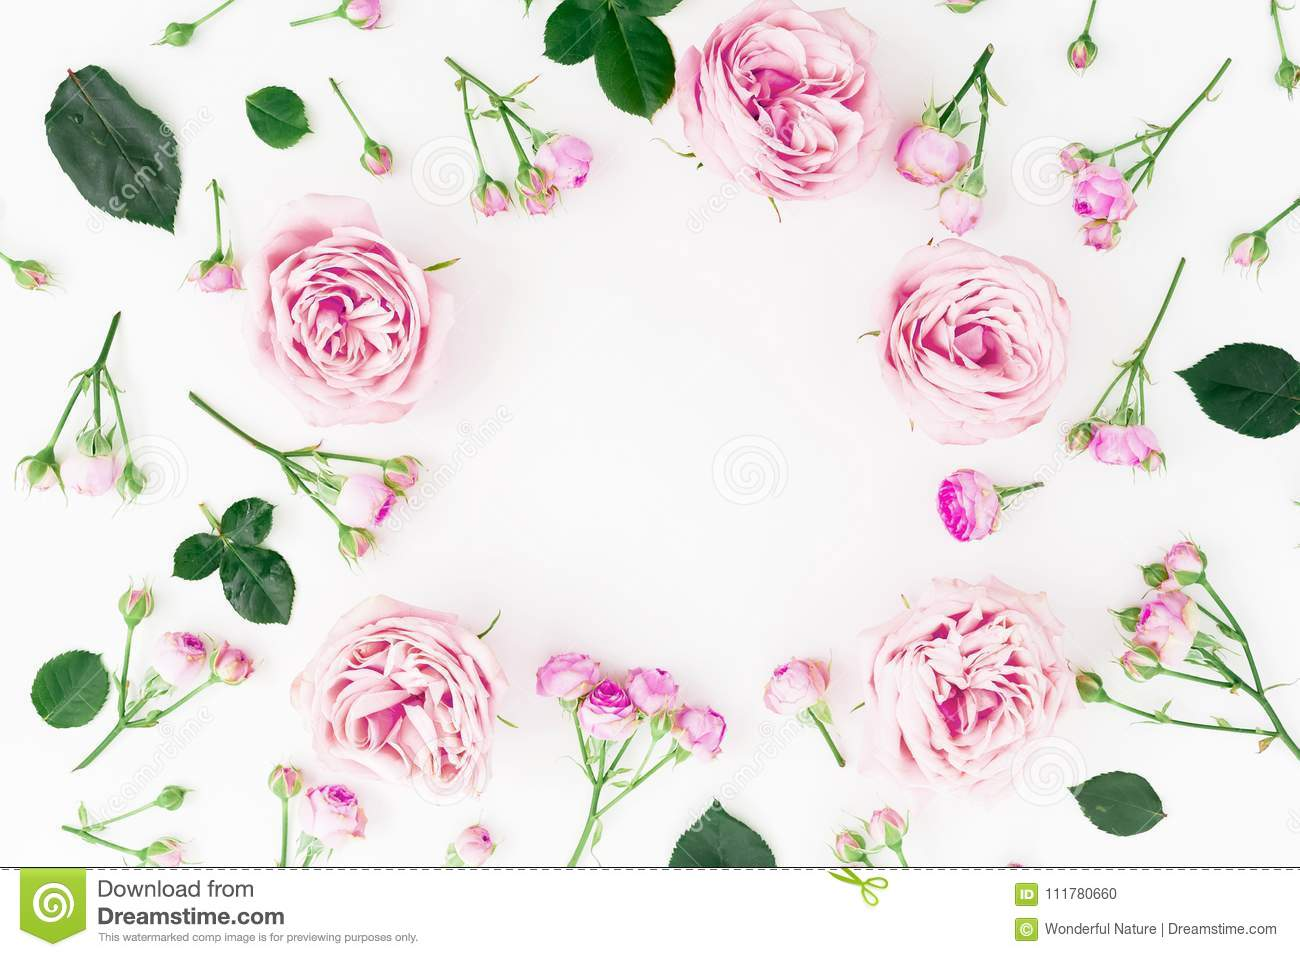 Floral round frame with pastel roses and leaves on white background. Flat lay, top view. Frame background